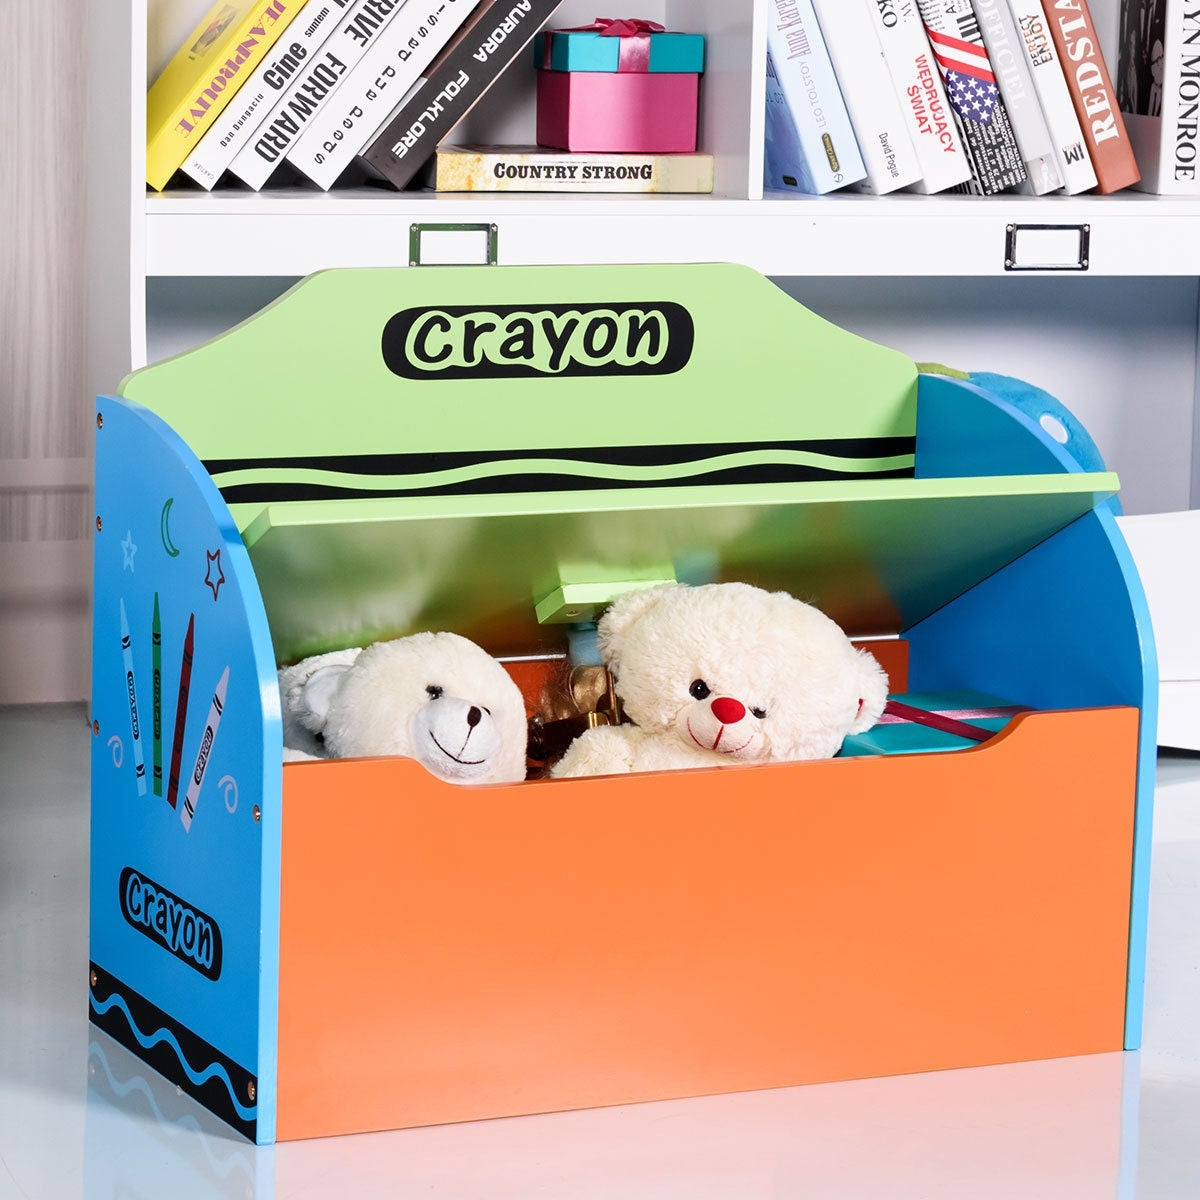 Shop Gymax Crayon Themed Wood Toy Storage Box And Bench For Kids Toddler  Children Colorful   Free Shipping Today   Overstock.com   22999611